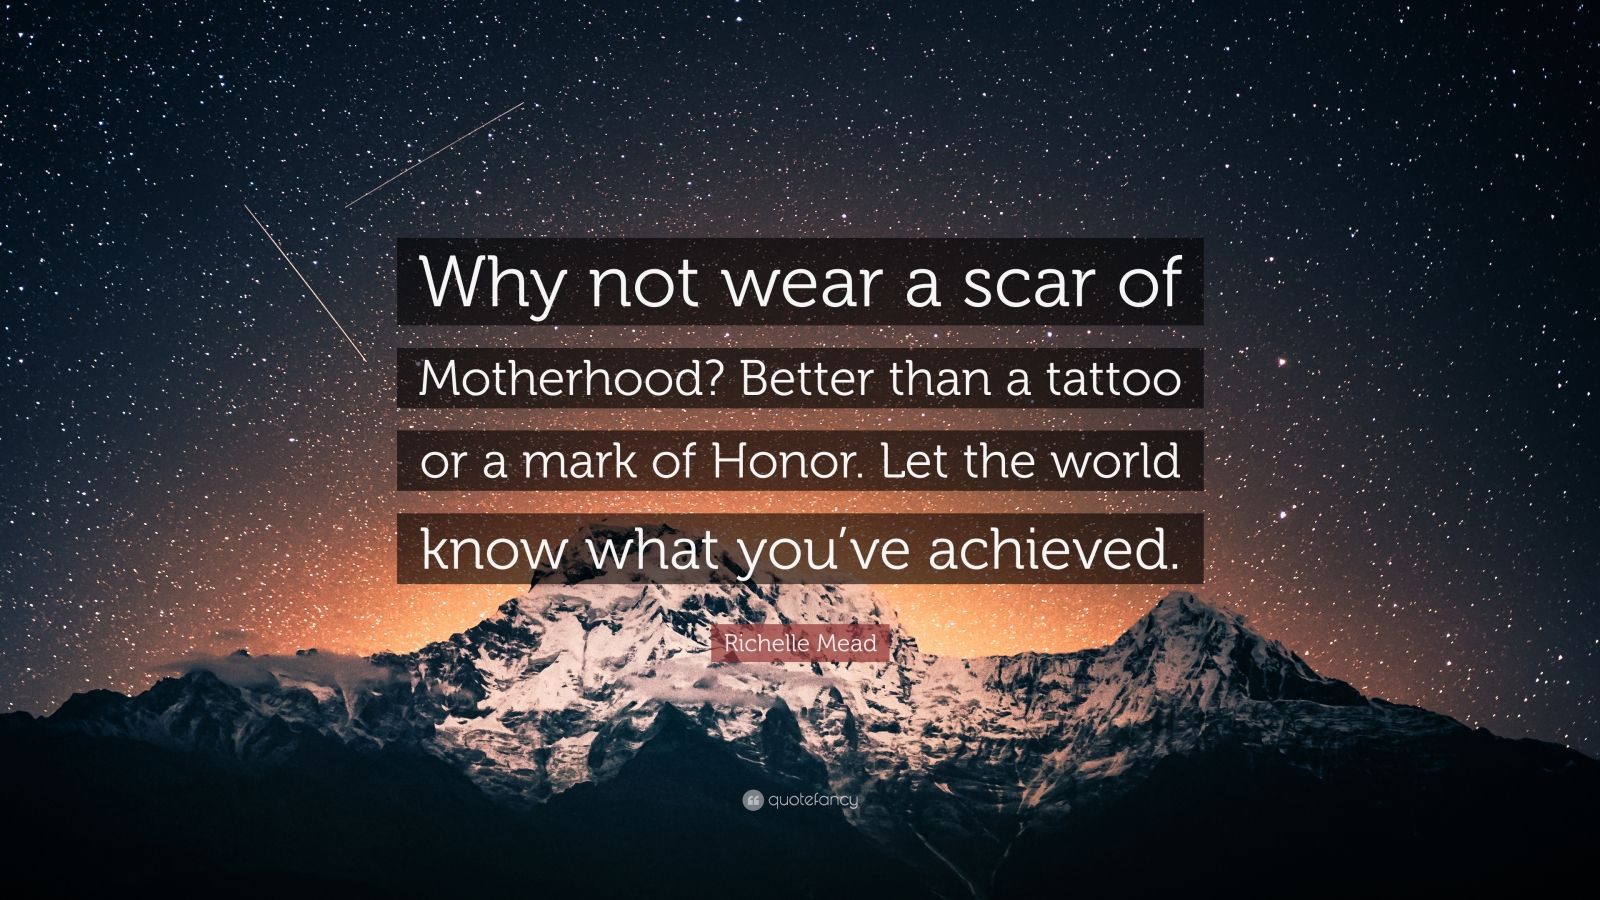 """Richelle Mead Quote: """"Why not wear a scar of Motherhood? Better than a tattoo or a mark of Honor. Let the world know what you've achieved."""""""